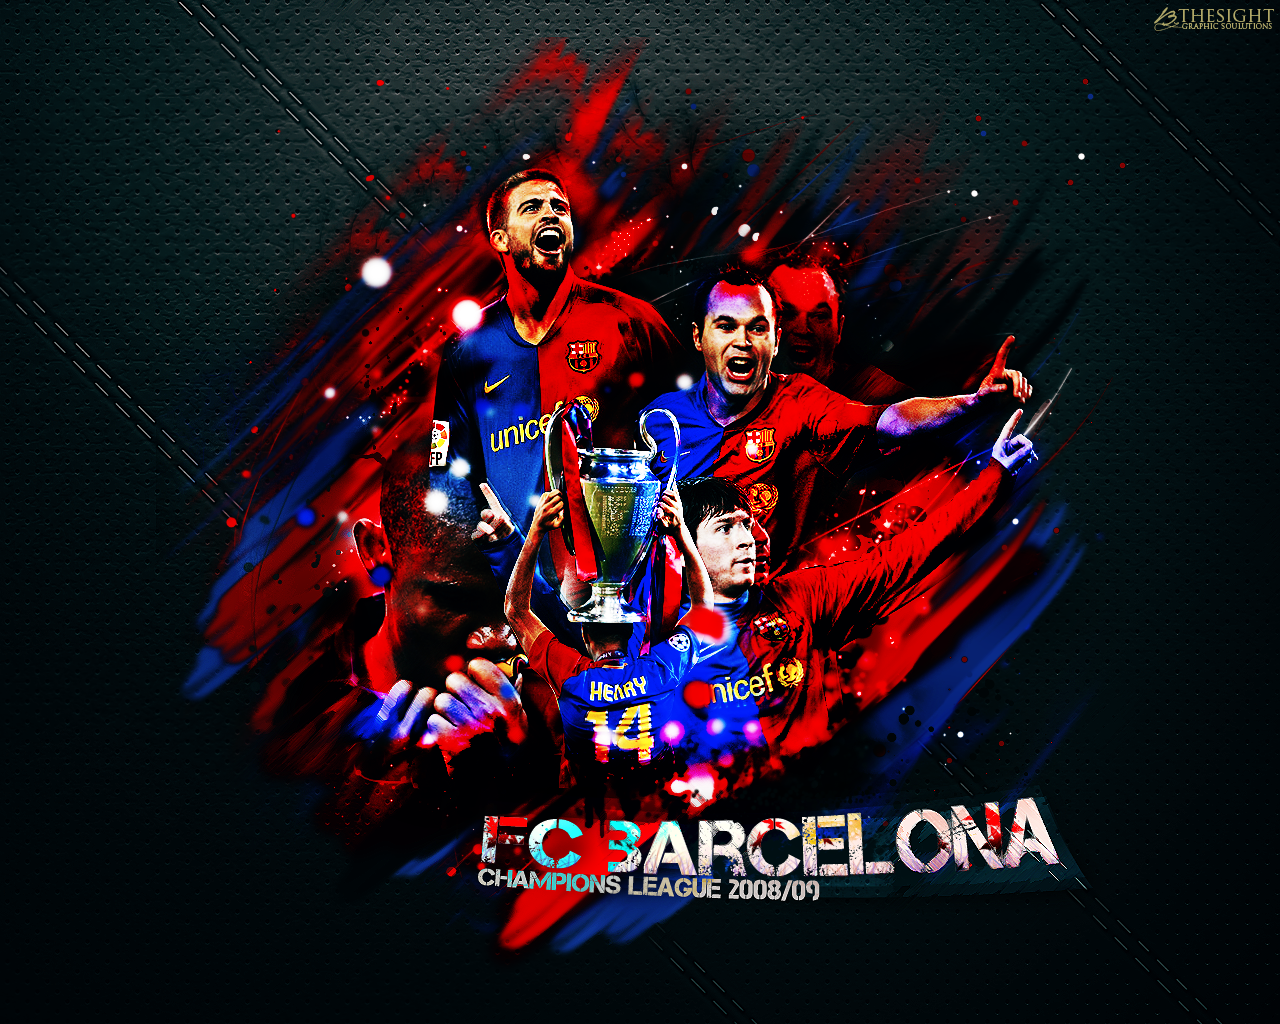 HD]FC Barcelona Wallpapers Risen Sources 1280x1024